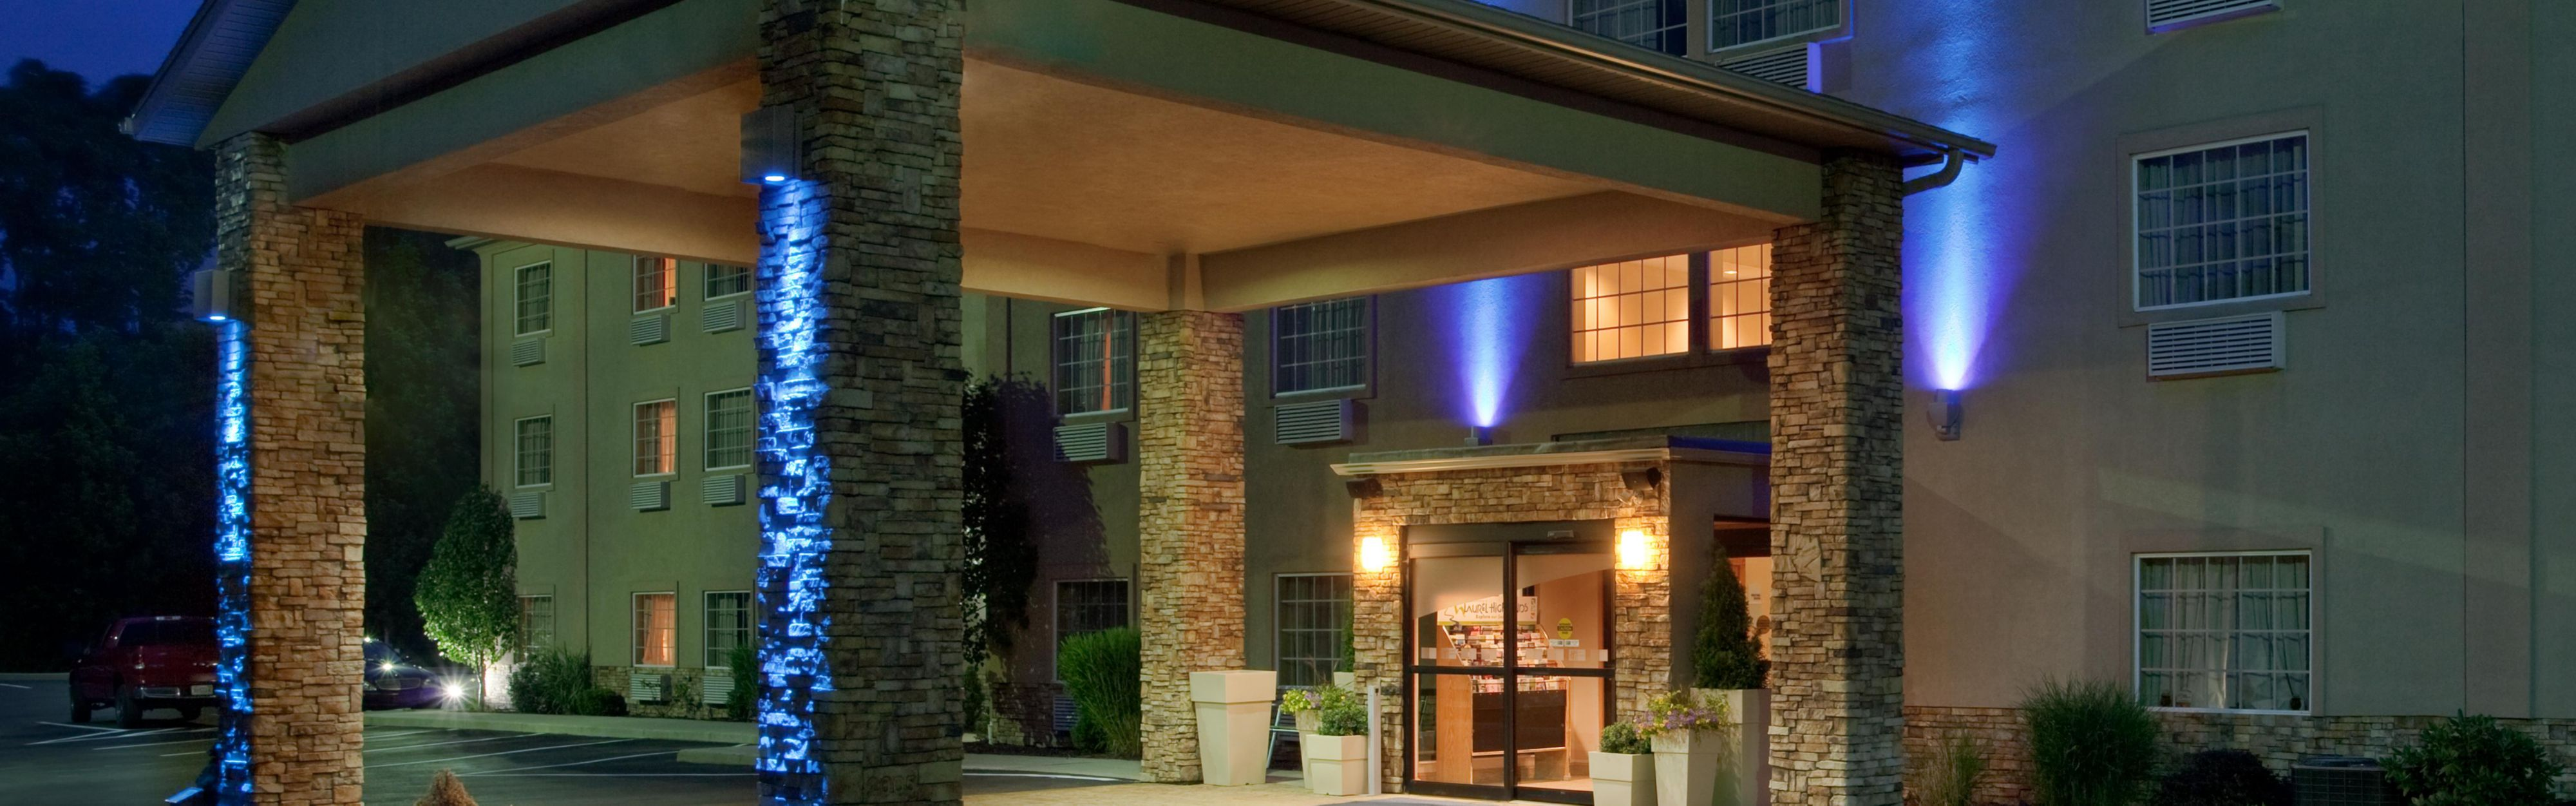 Holiday Inn Express Mt. Pleasant - Scottdale image 0